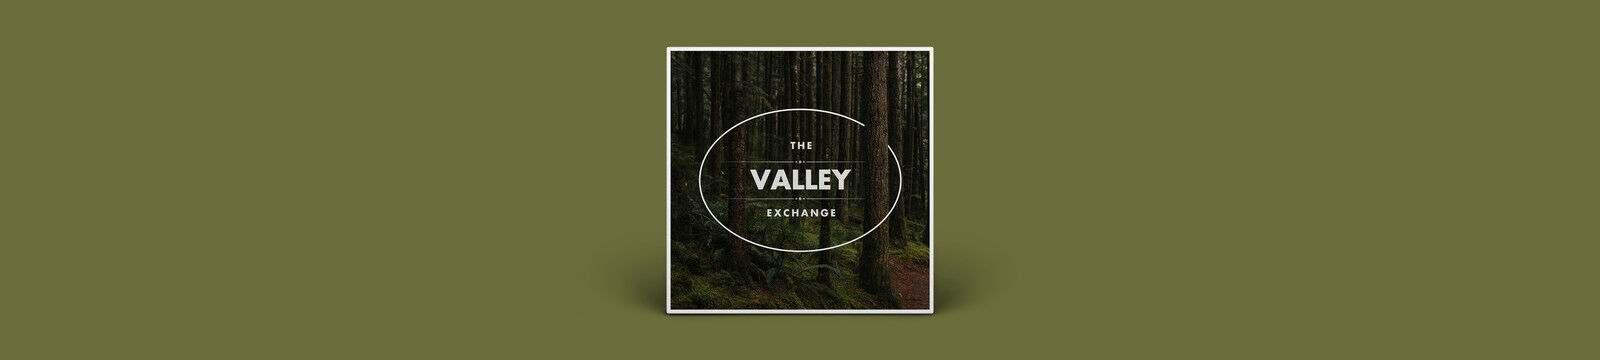 The Valley Exchange